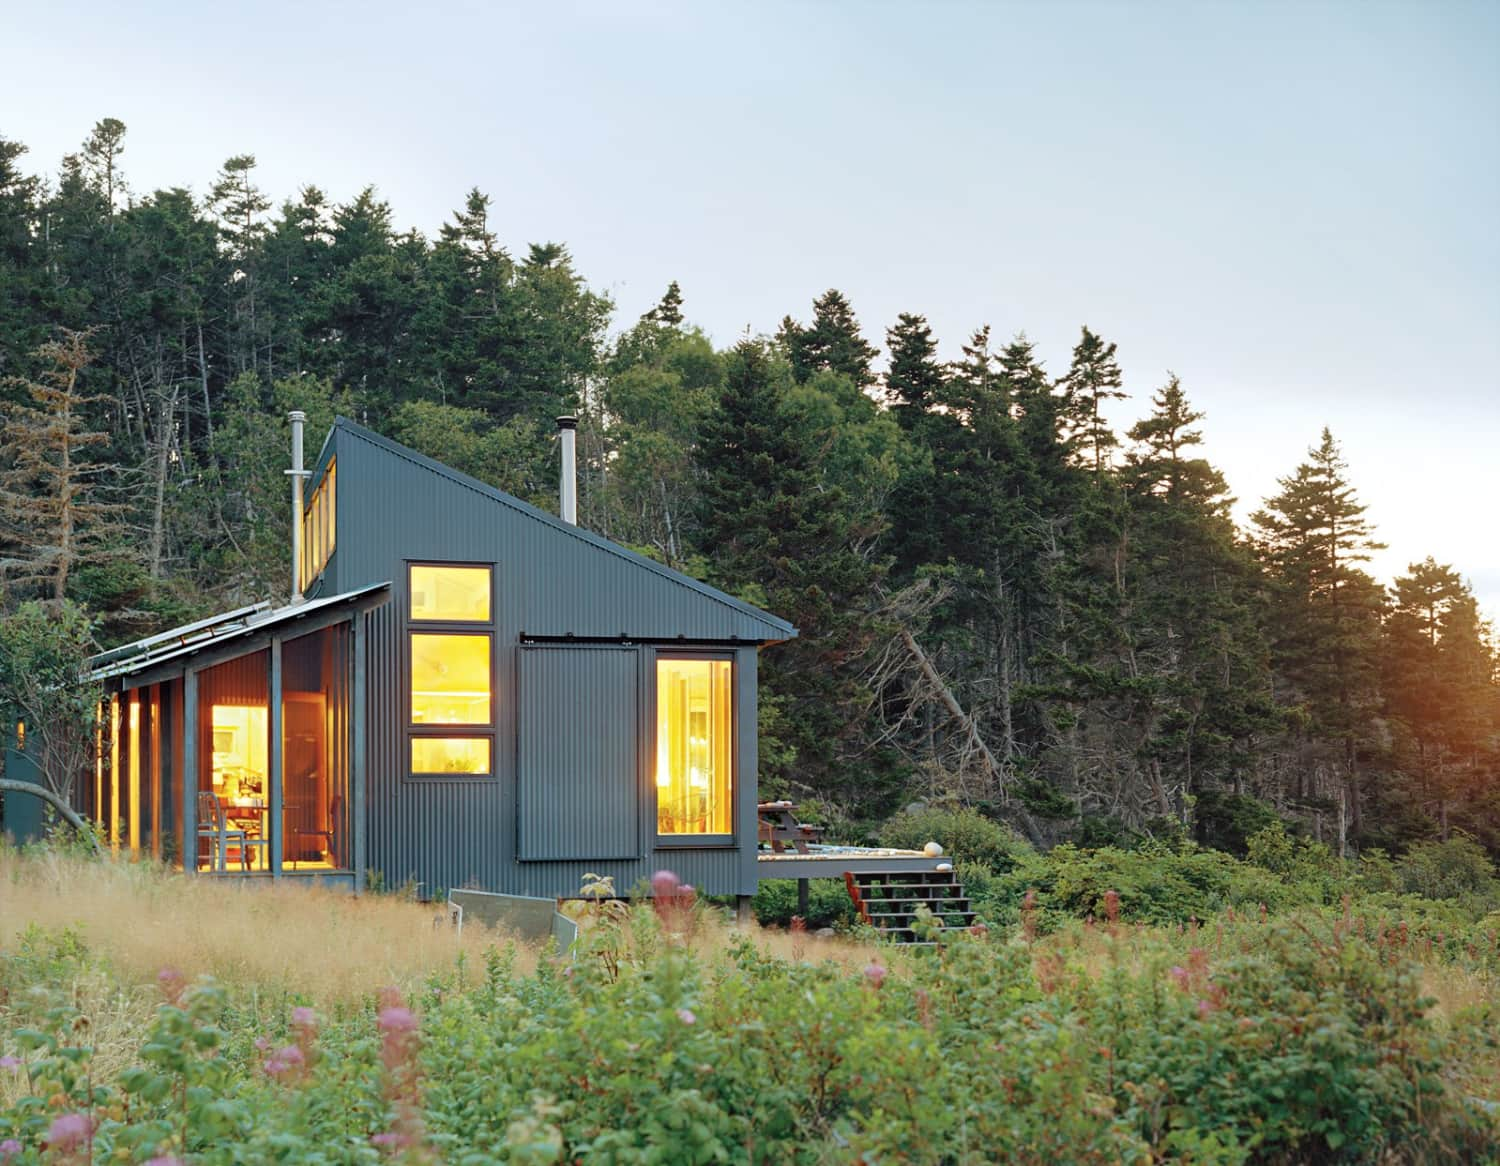 Here's How This Tiny Cabin Functions Completely Off the Grid